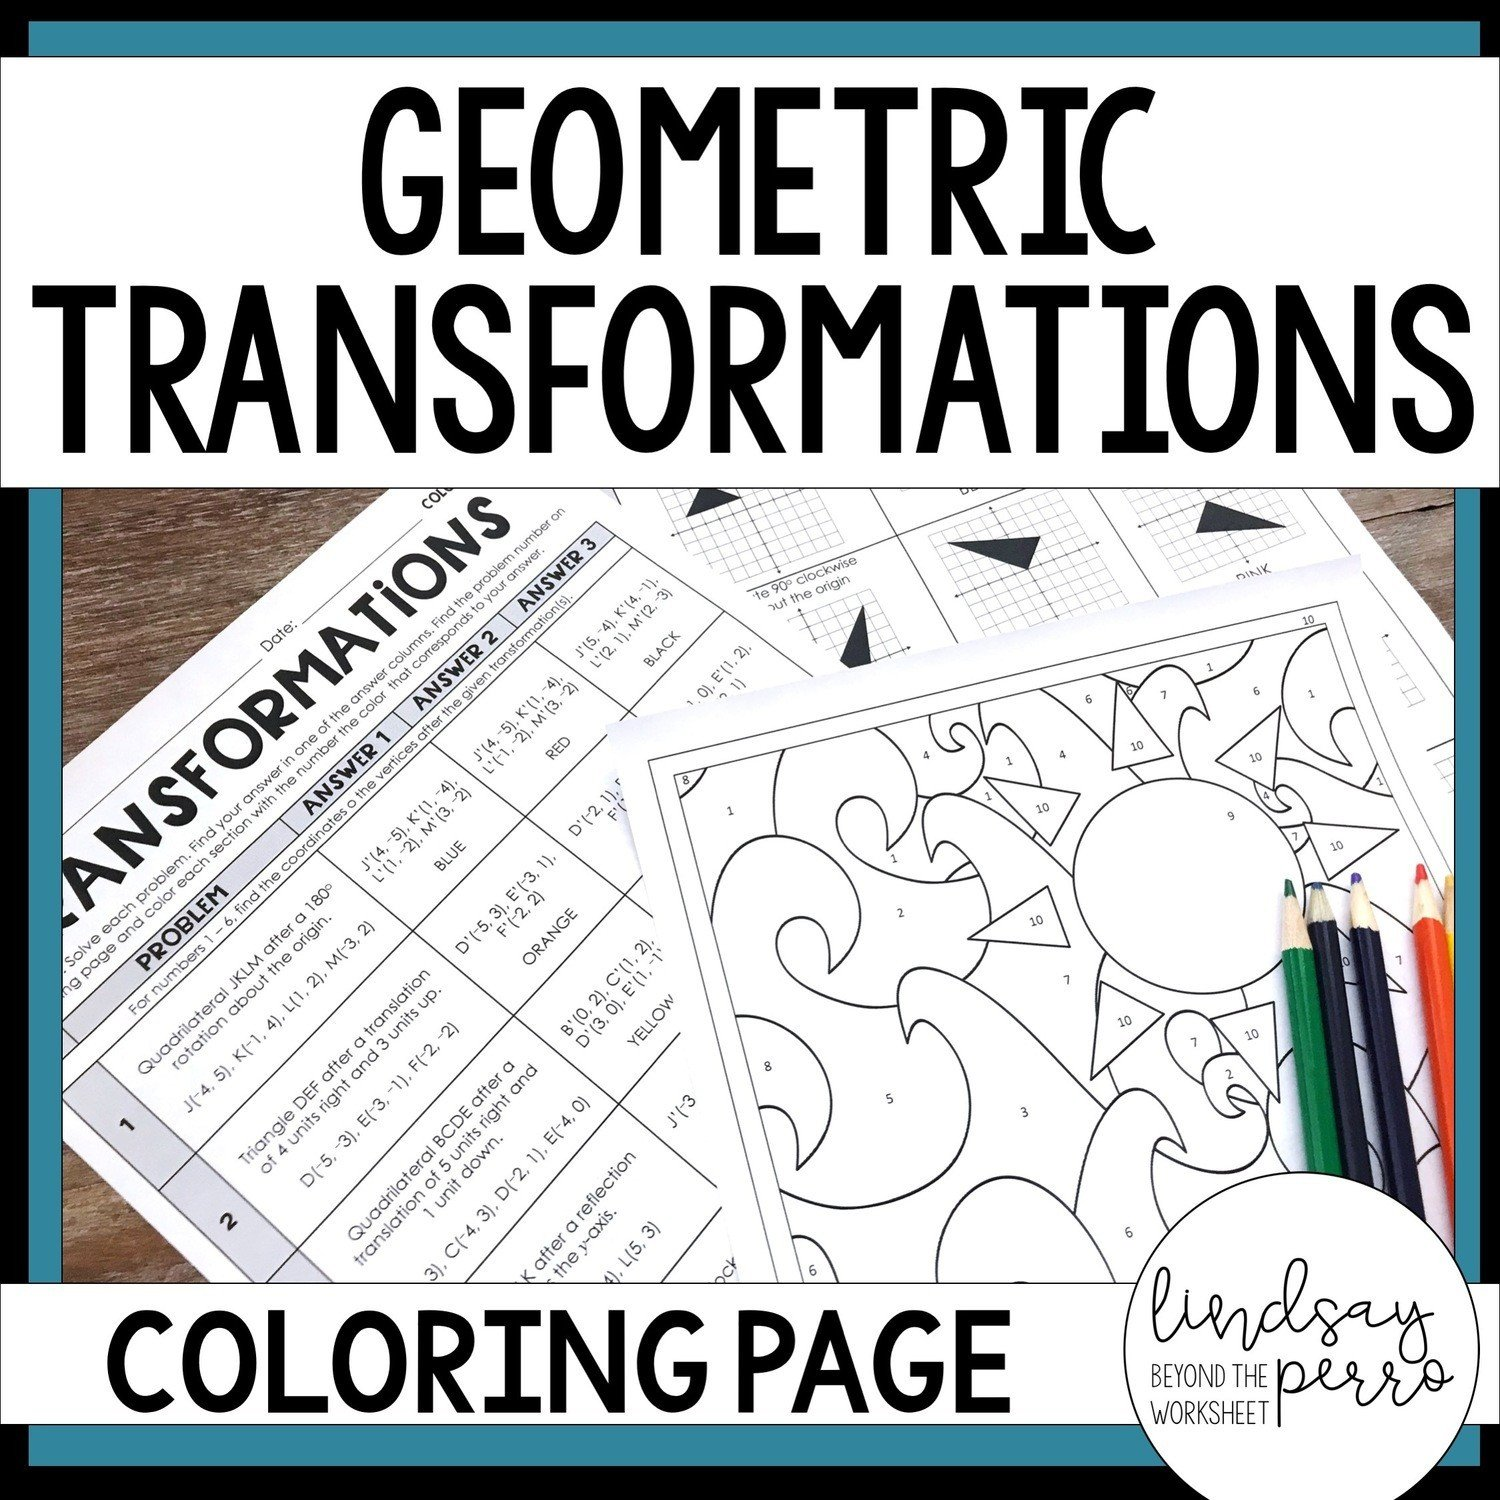 Solving Inequalities Coloring Worksheet Geometric Transformations Coloring Page